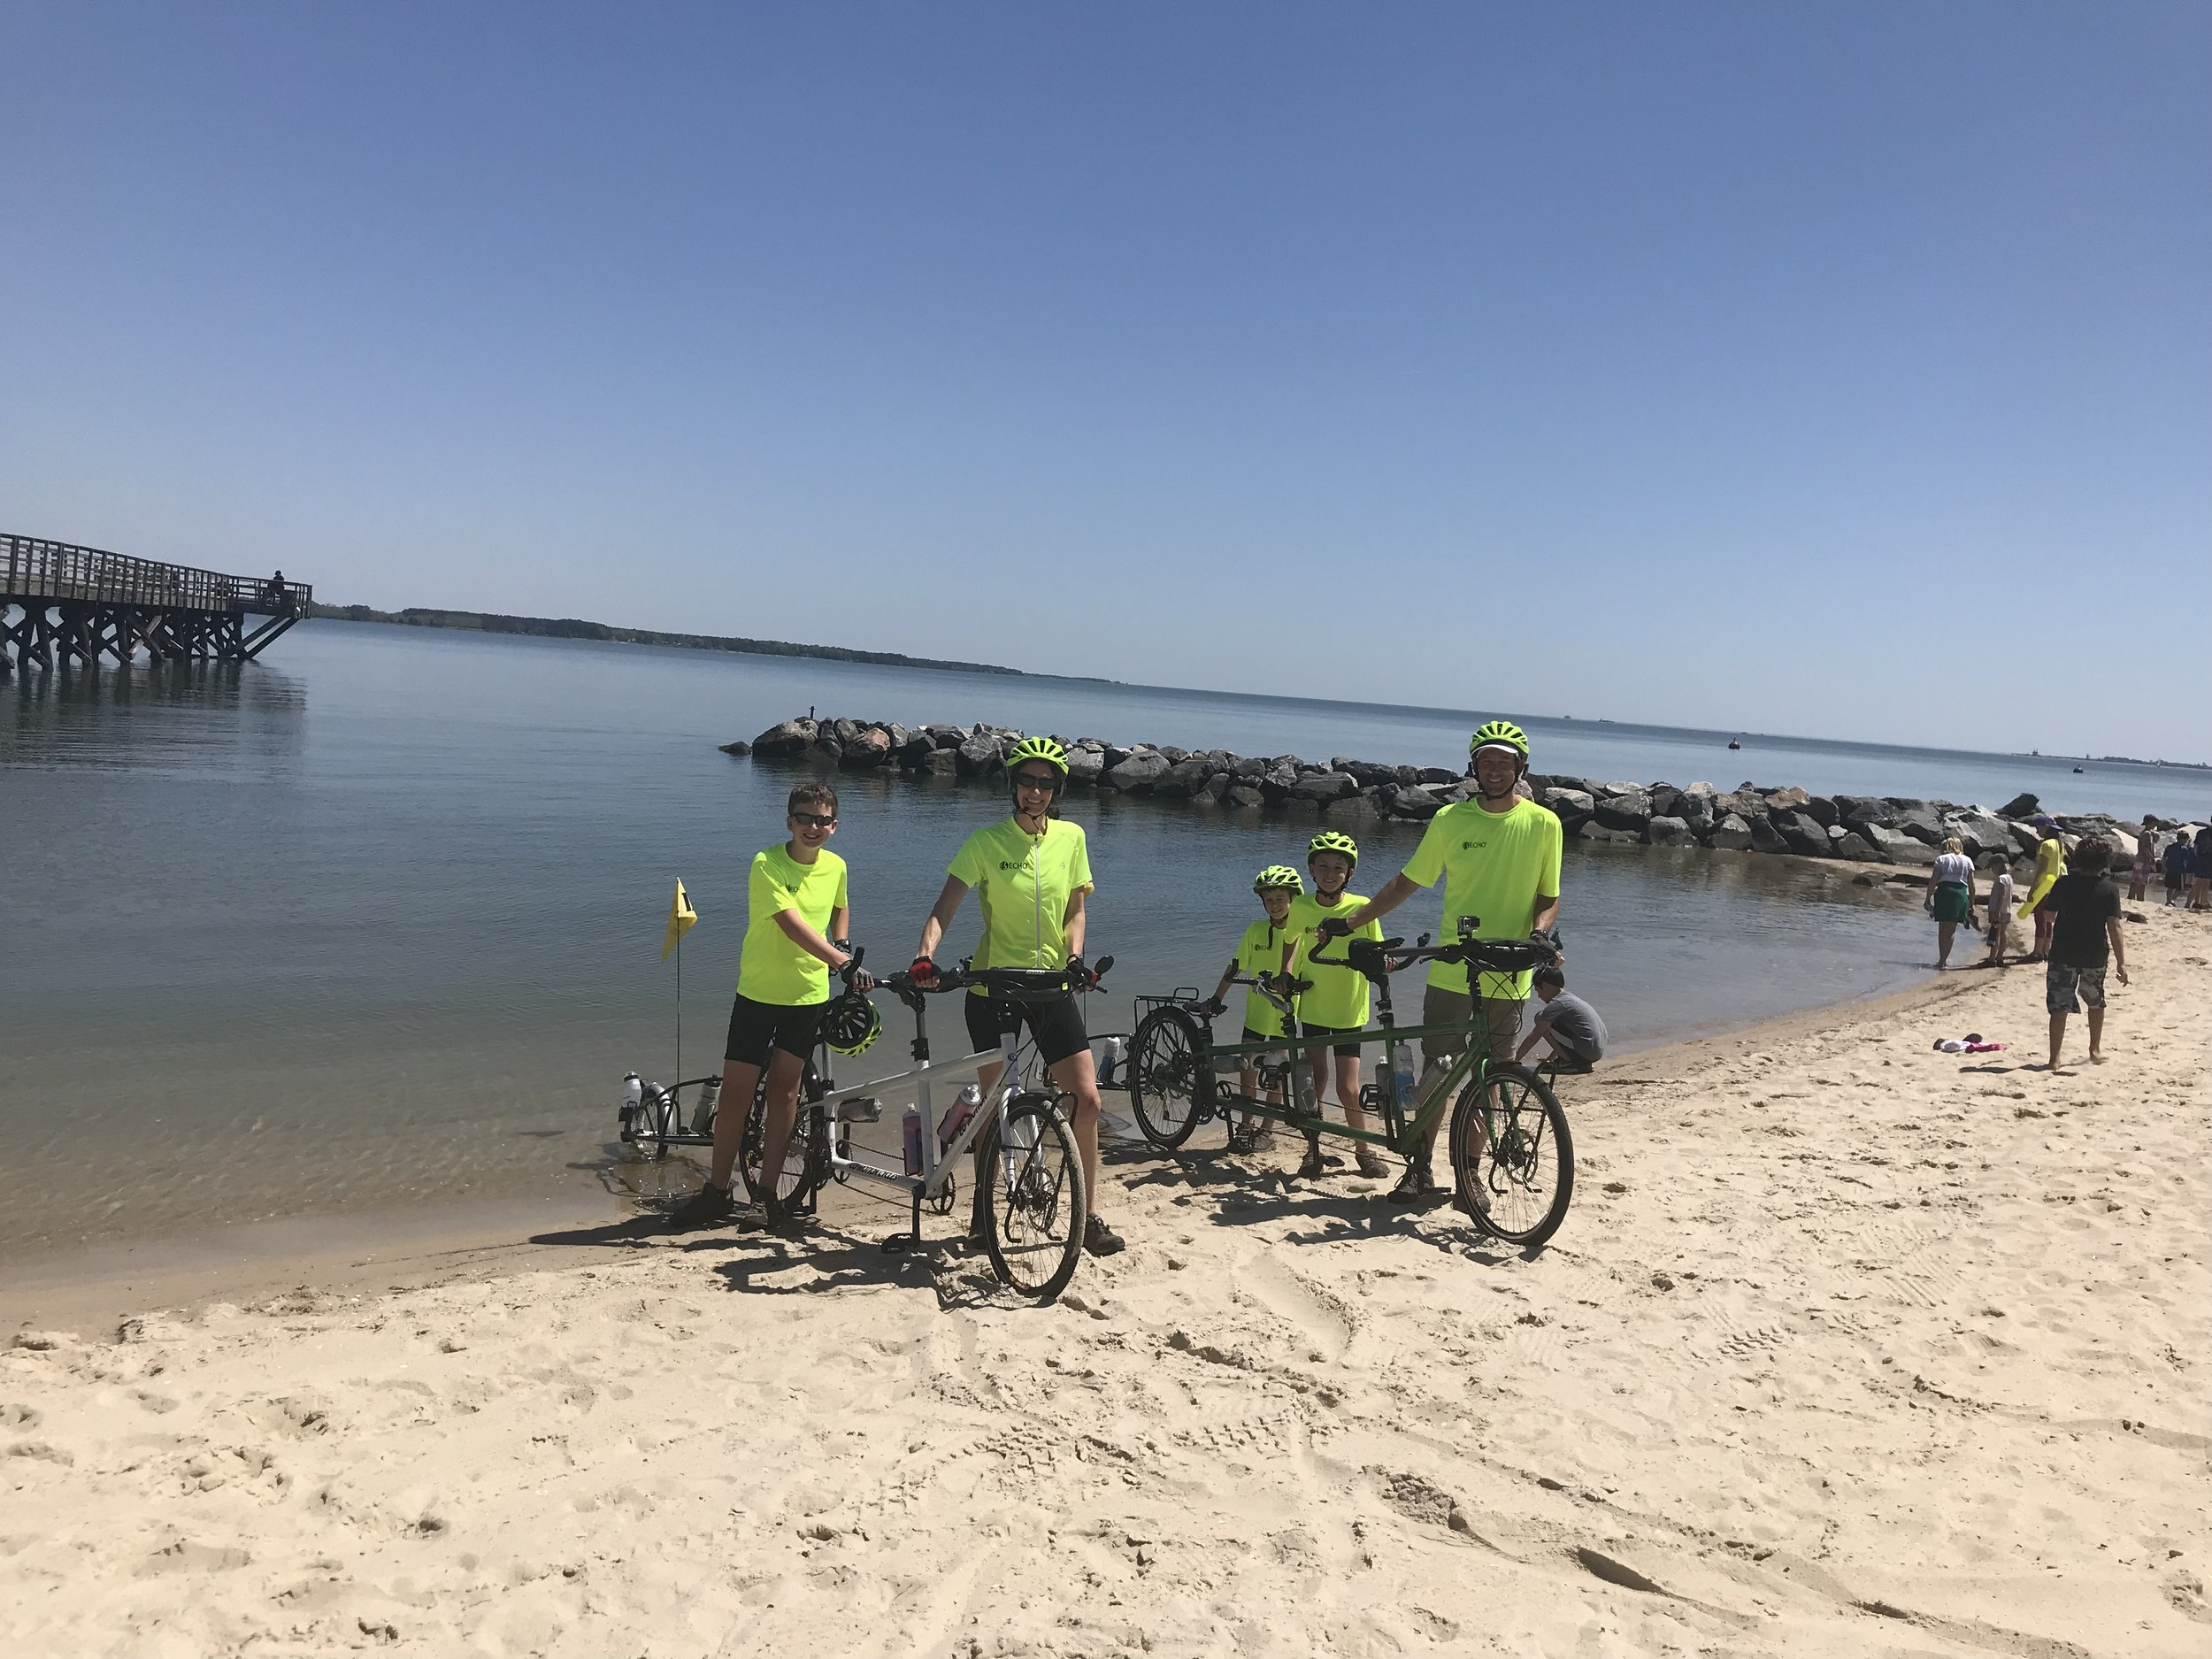 Here we are dipping our tires into the Atlantic (actually, the York River, more accurately- but close enough, right?). Our official (while symbolic) start to our journey across the country.